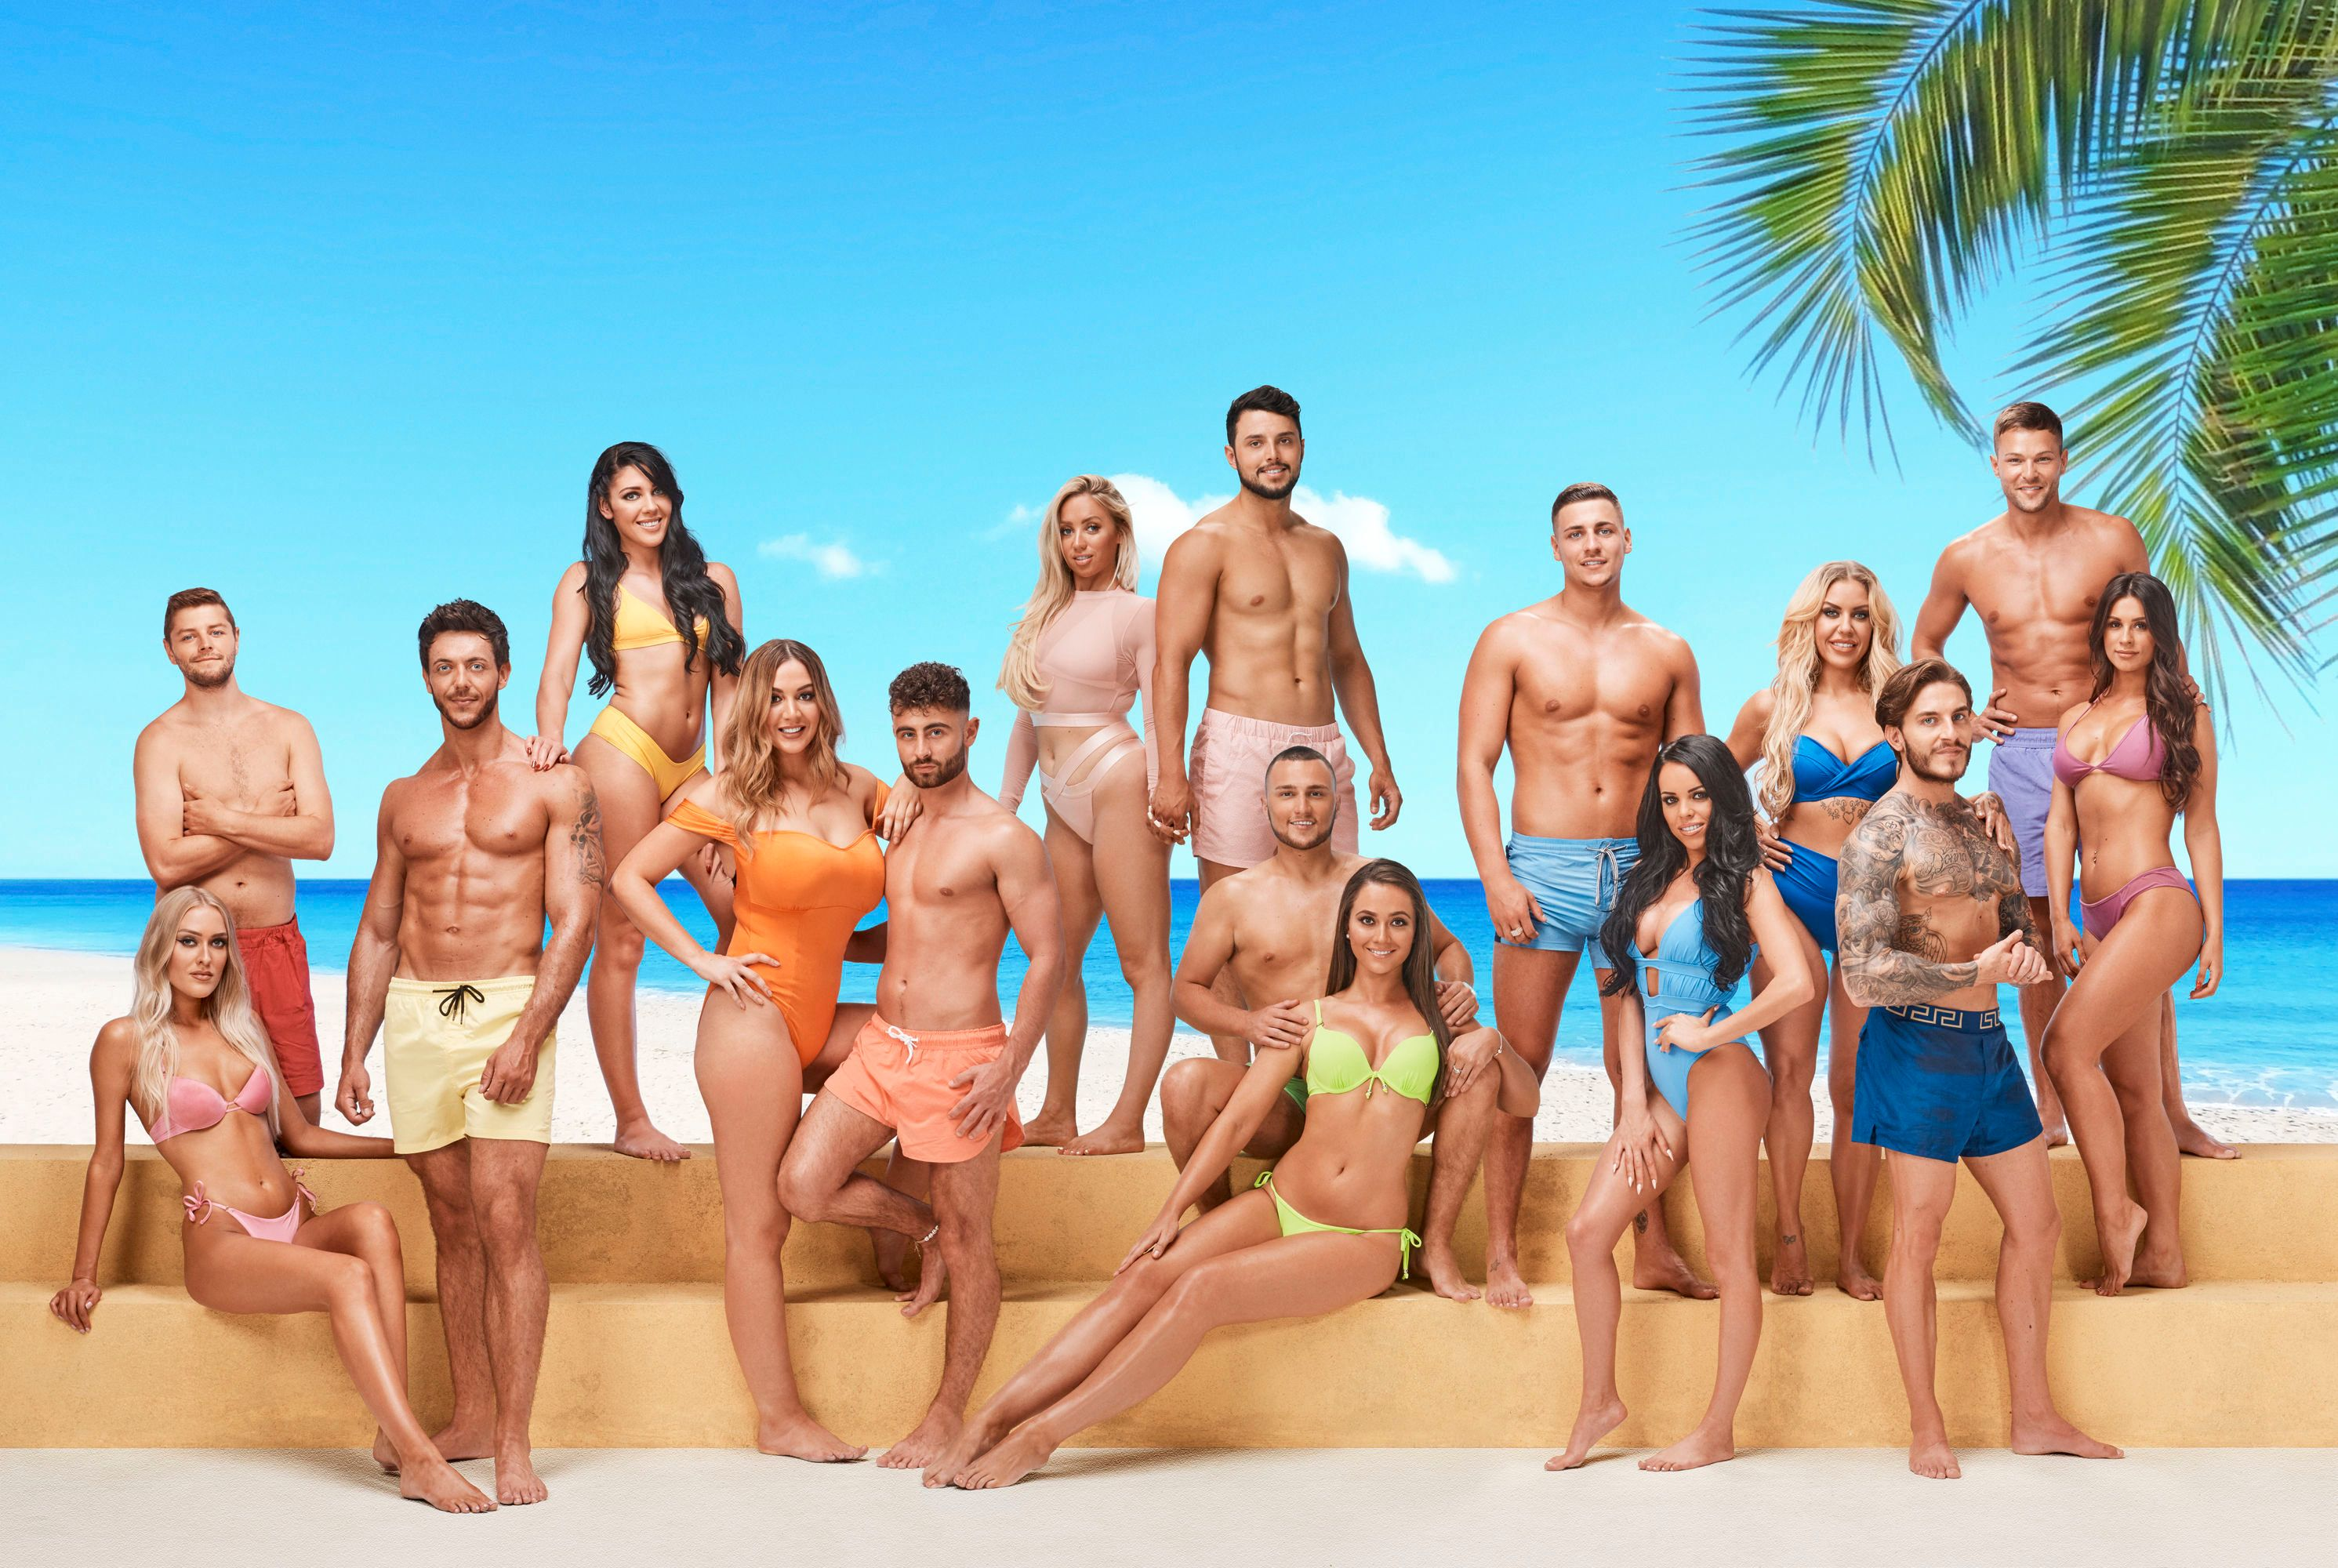 'Make Or Break' Could Fill The 'Love Island'-Shaped Hole In Your